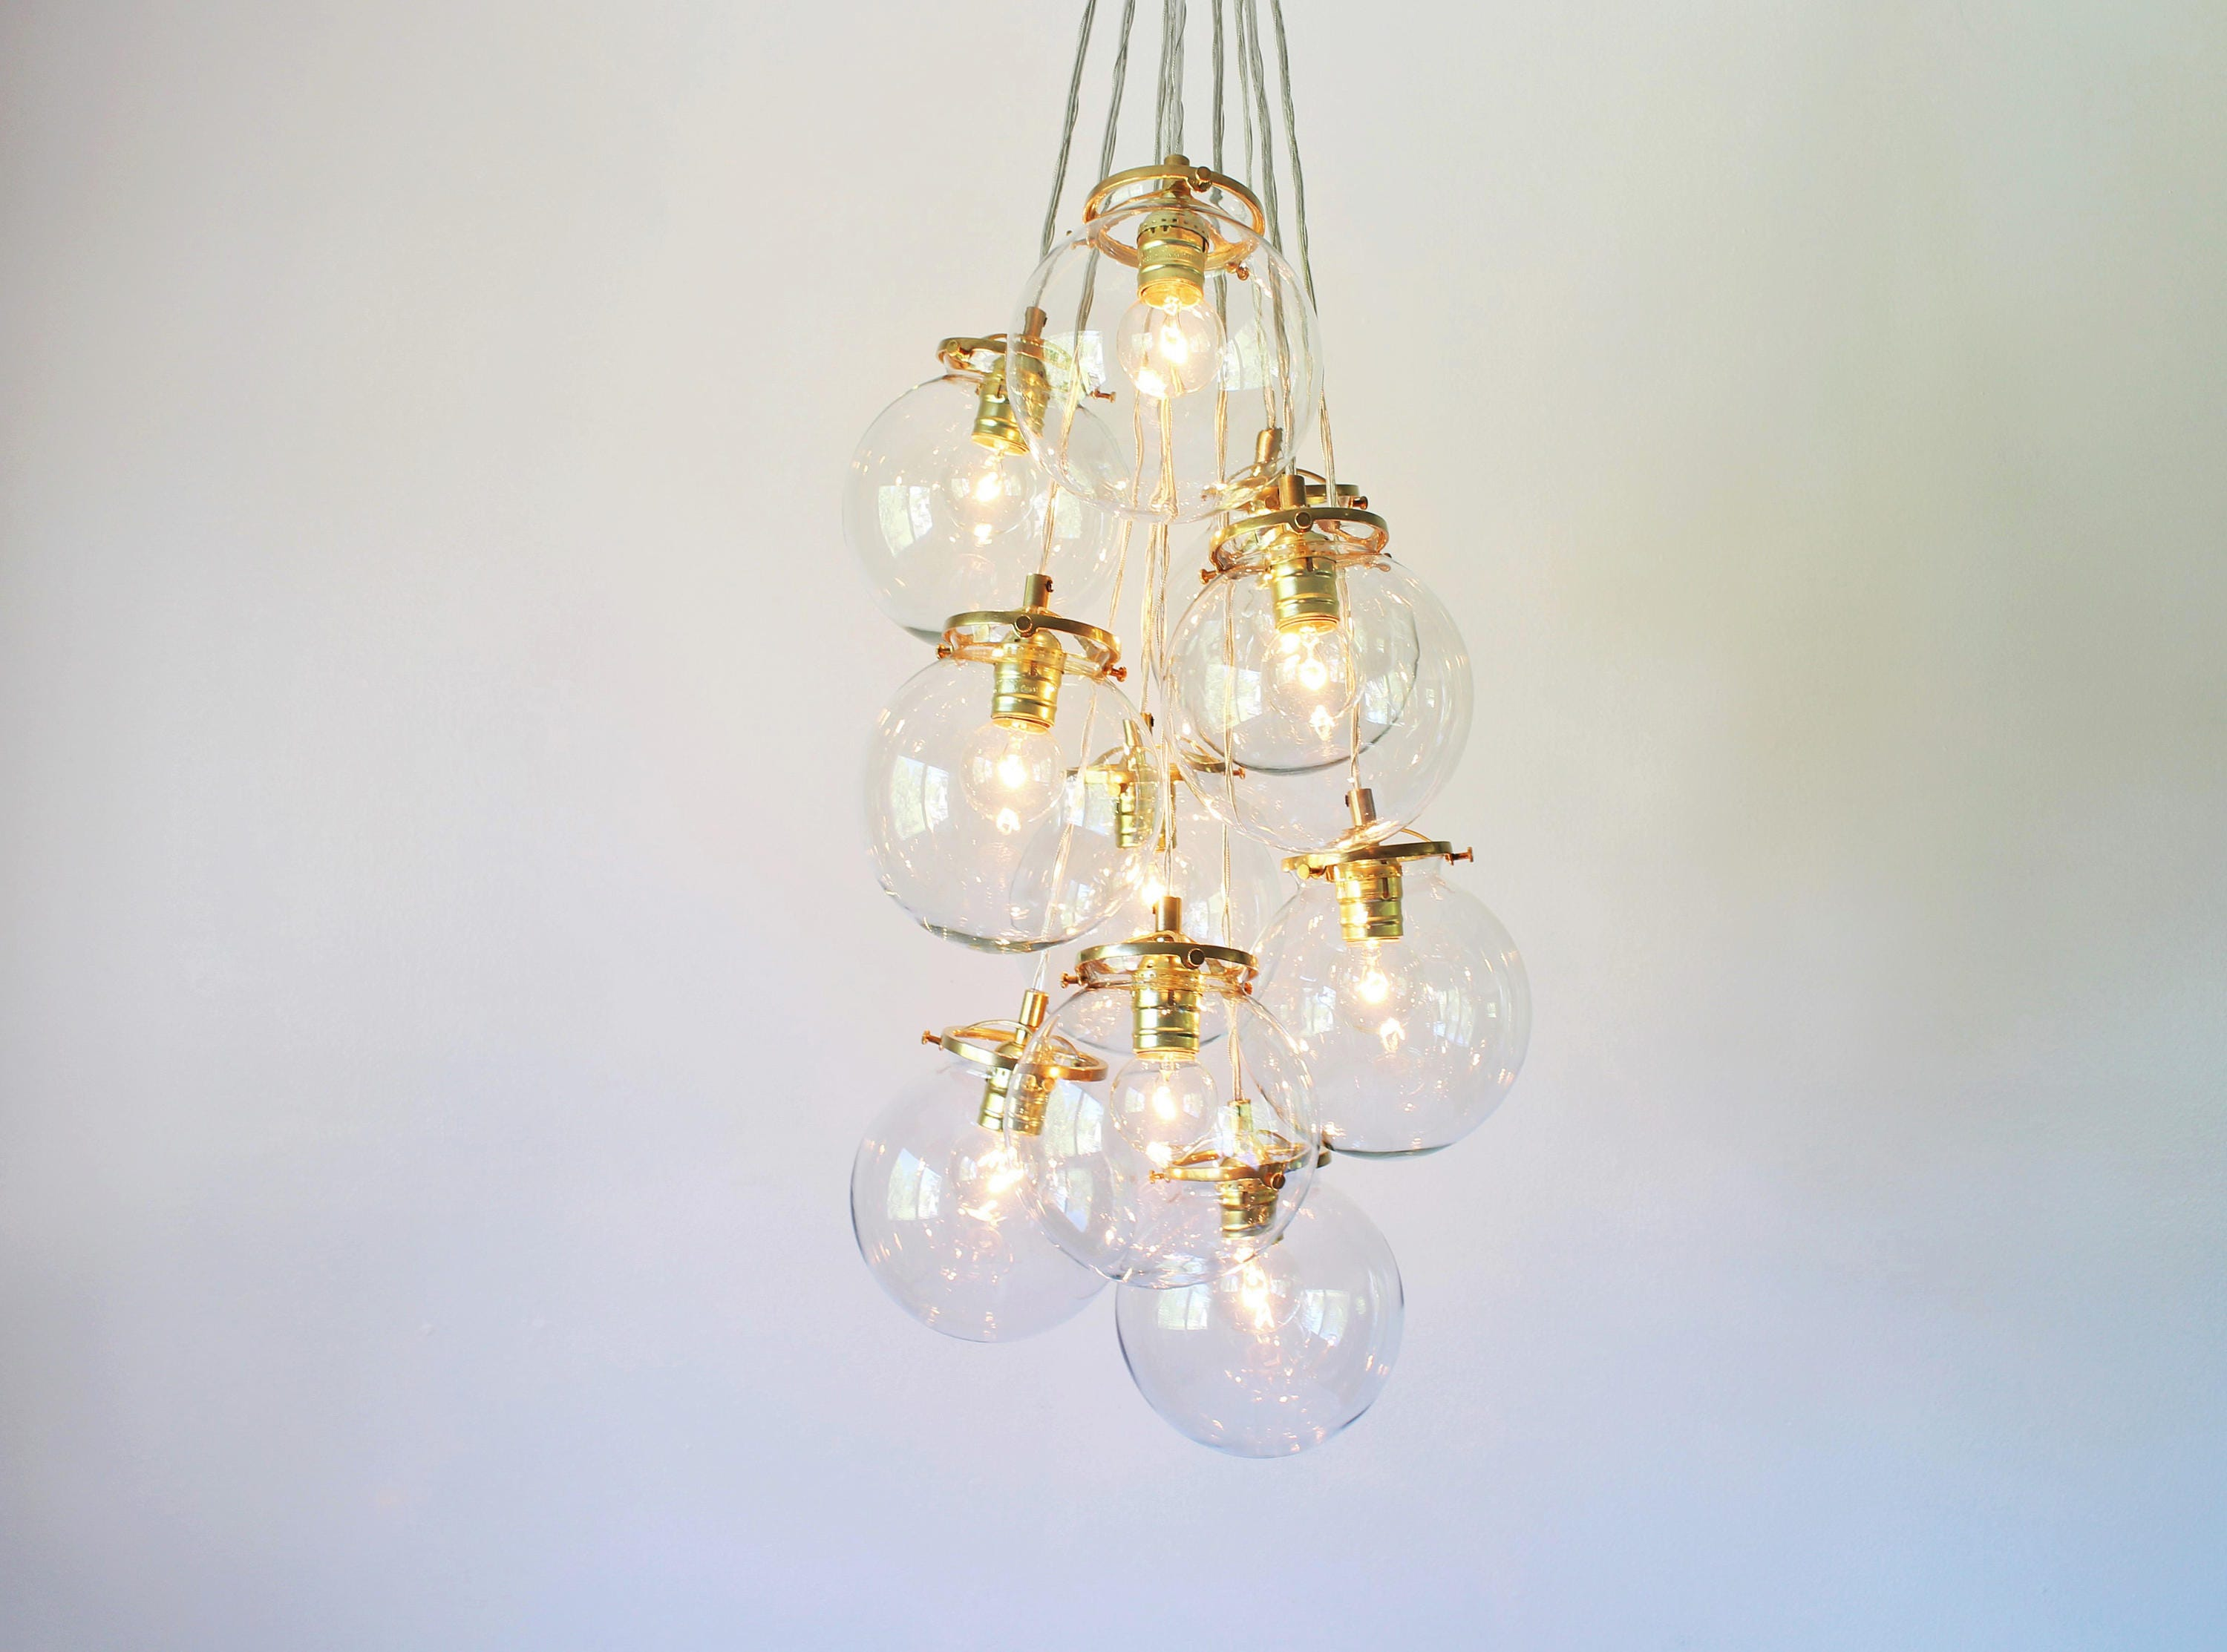 Globe bubble chandelier lighting fixture 10 hanging clear glass orb clustered pendants modern bootsngus lighting home decor